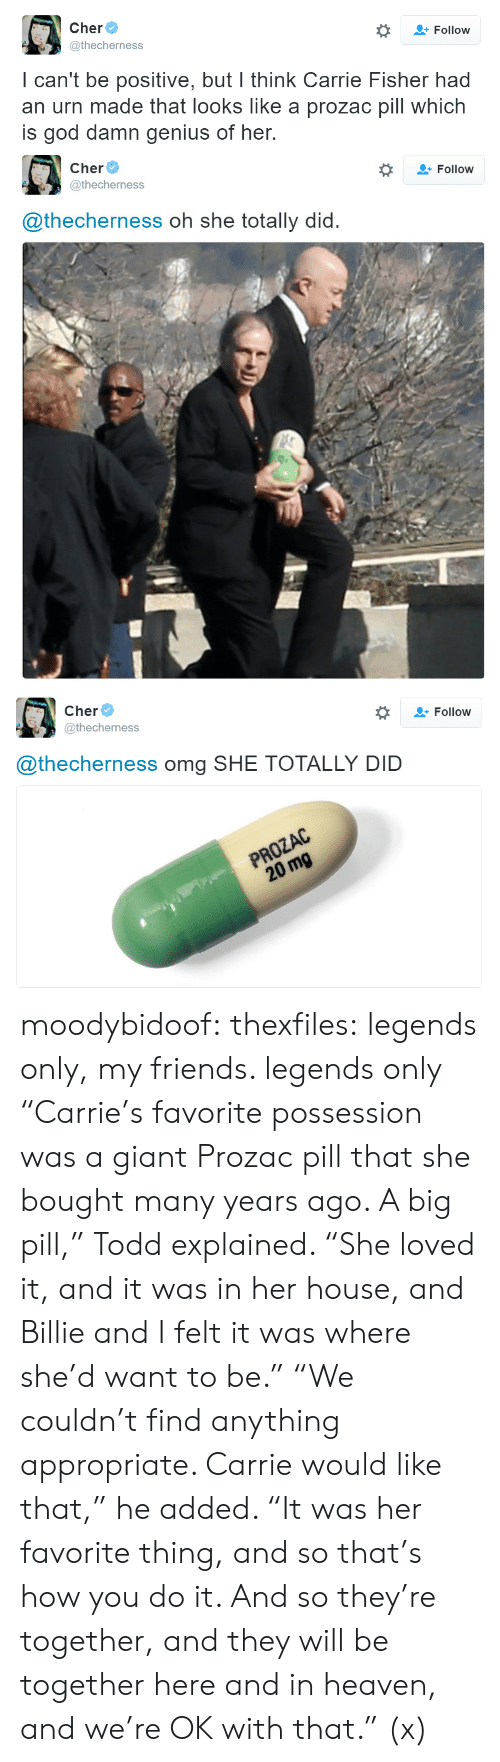 """Carrie Fisher: Follow  @thecherness  I can't be positive, but I think Carrie Fisher had  an urn made that looks like a prozac pill which  is god damn genius of her.   Cher  @thecherness  #  Follow  @thecherness oh she totally did.   Cher  @thecherness  *  Follow  @thecherness omg SHE TOTALLY DID  PROZAC  20 mg moodybidoof: thexfiles: legends only, my friends. legends only  """"Carrie's favorite possession was a giant Prozac pill that she bought many years ago. A big pill,"""" Todd explained. """"She loved it, and it was in her house, and Billie and I felt it was where she'd want to be."""" """"We couldn't find anything appropriate. Carrie would like that,"""" he added. """"It was her favorite thing, and so that's how you do it. And so they're together, and they will be together here and in heaven, and we're OK with that."""" (x)"""